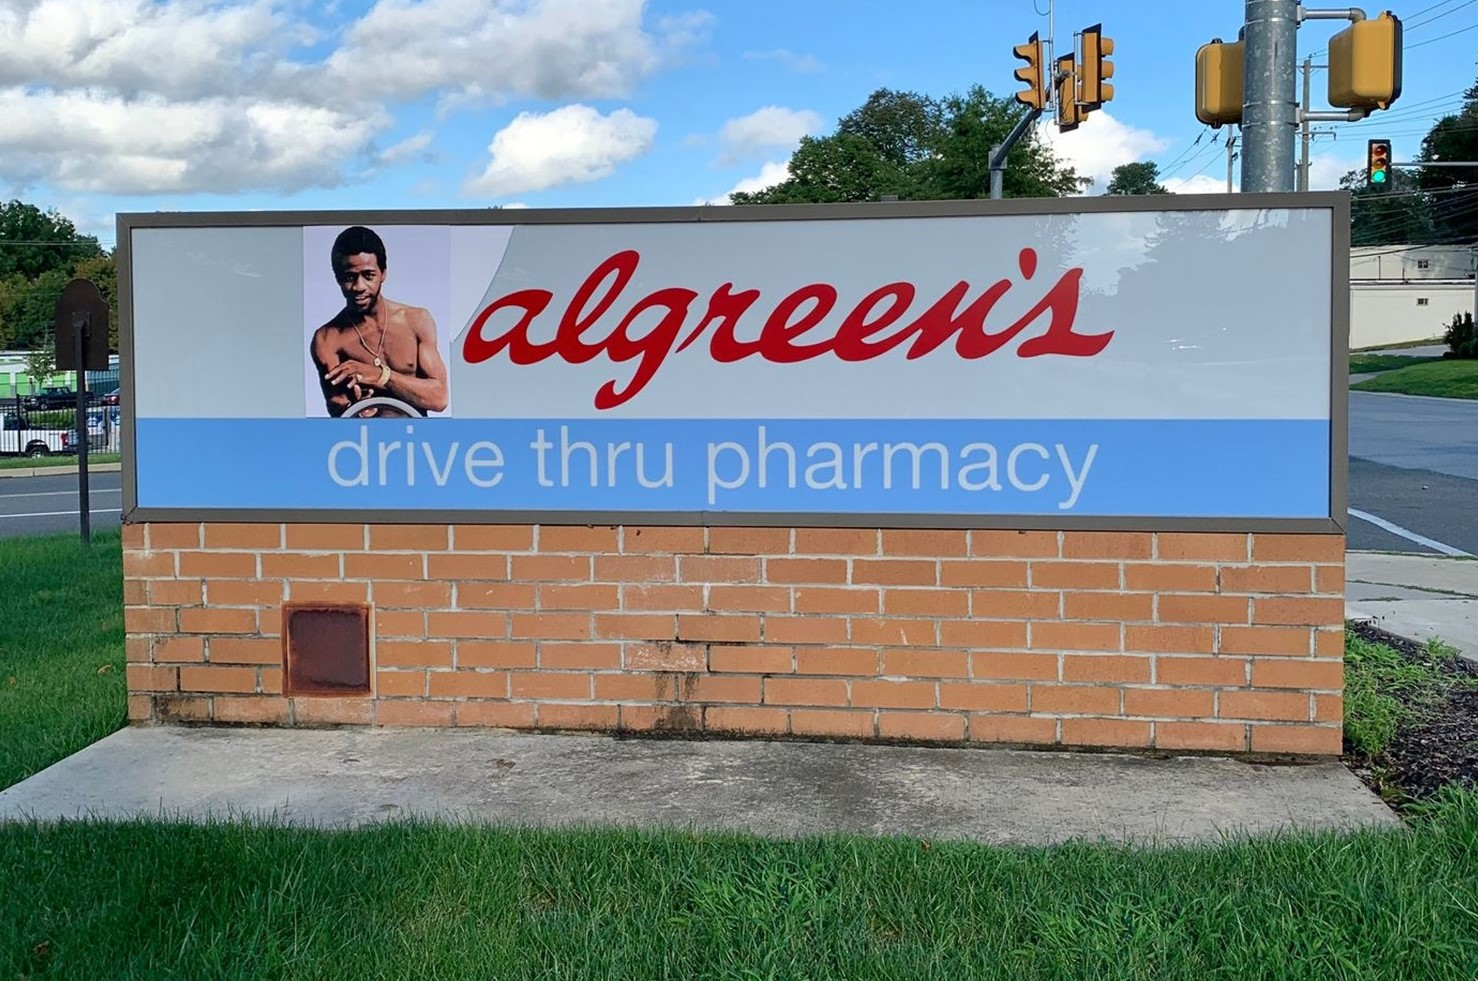 Local Street Artist's Al Green-Themed Alteration to Walgreens Sign in West Chester Goes Viral